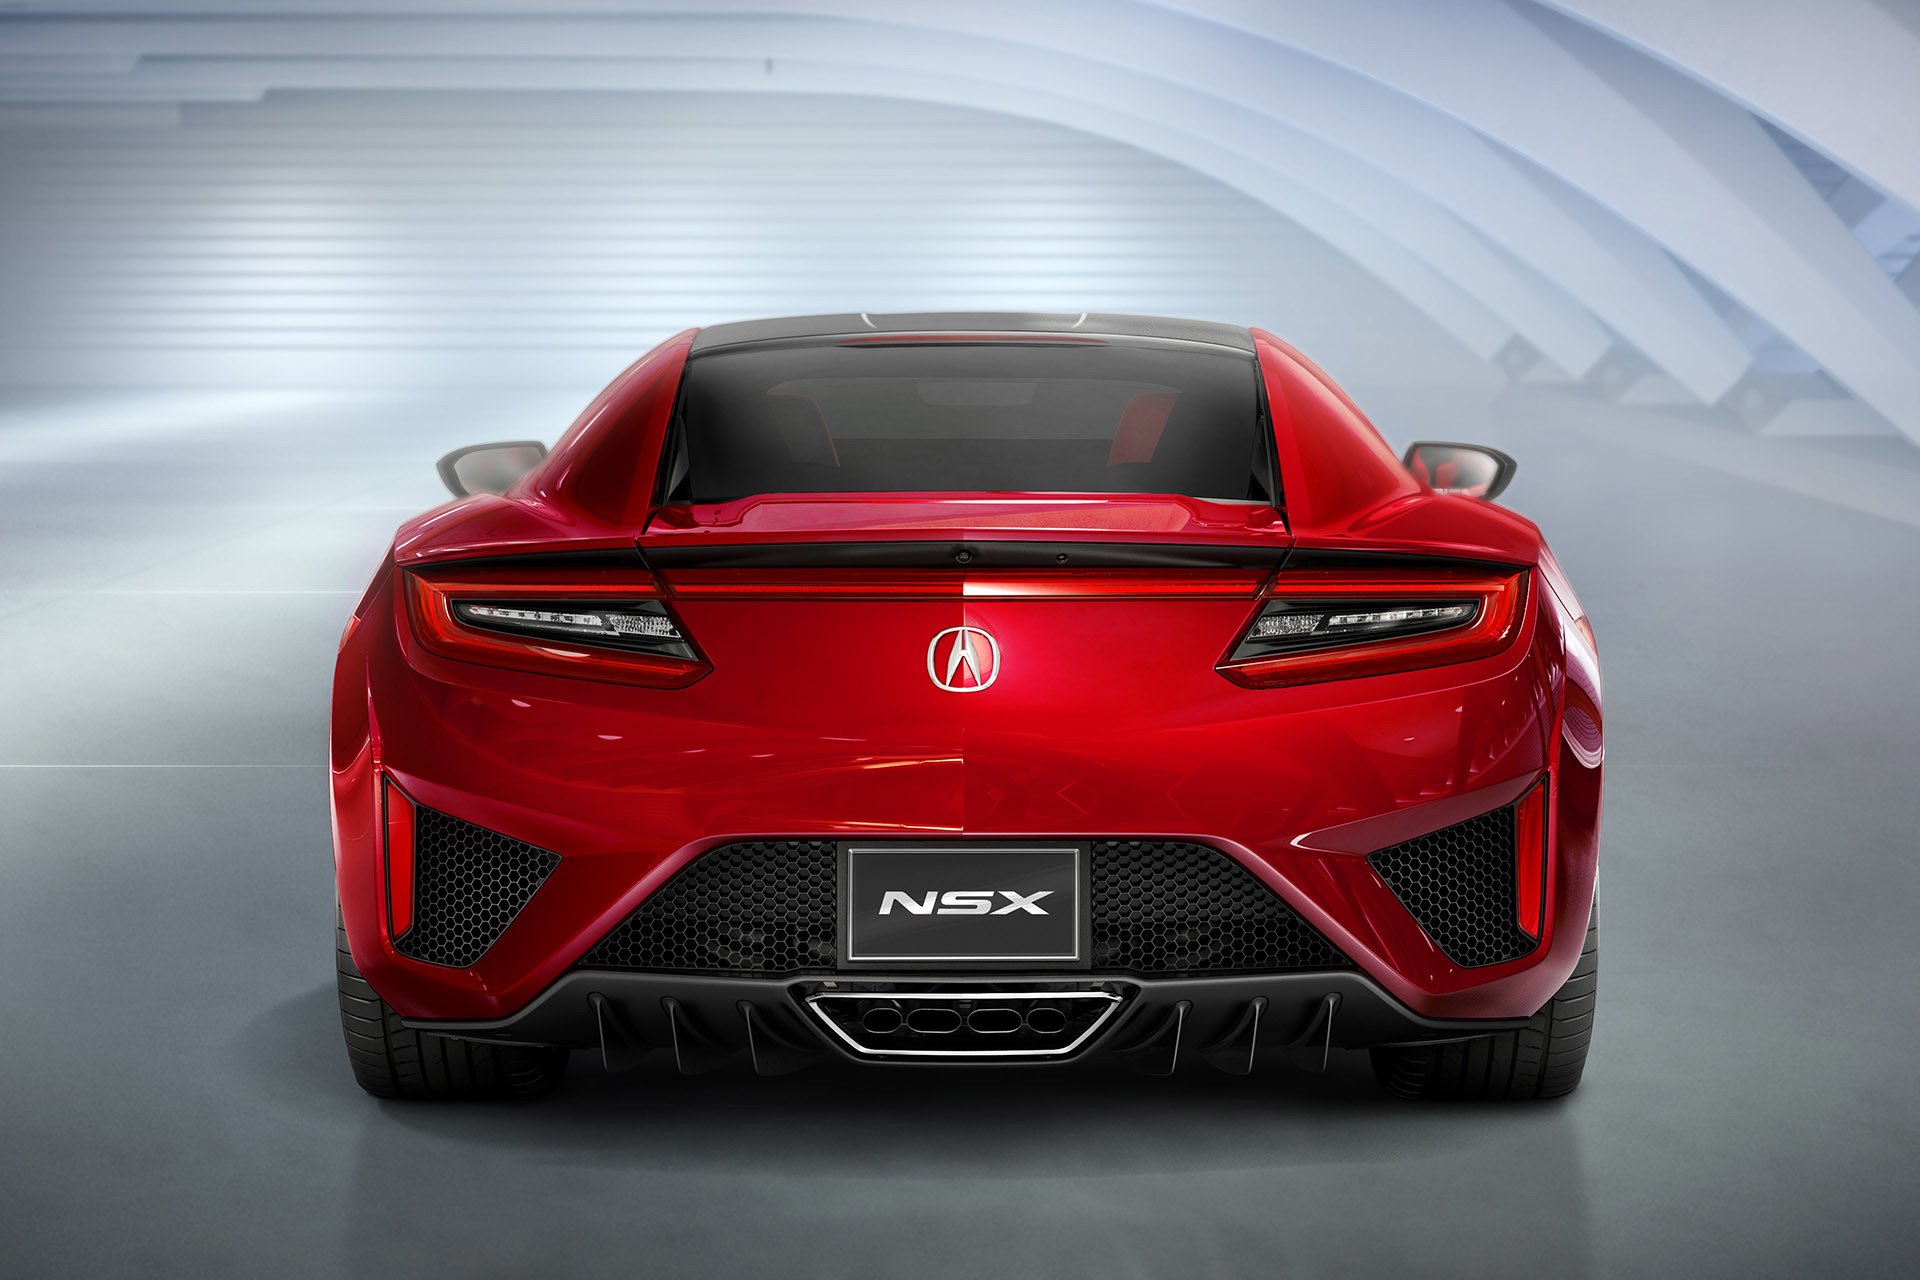 acura reveals all new production nsx at 2015 detroit auto show. Black Bedroom Furniture Sets. Home Design Ideas